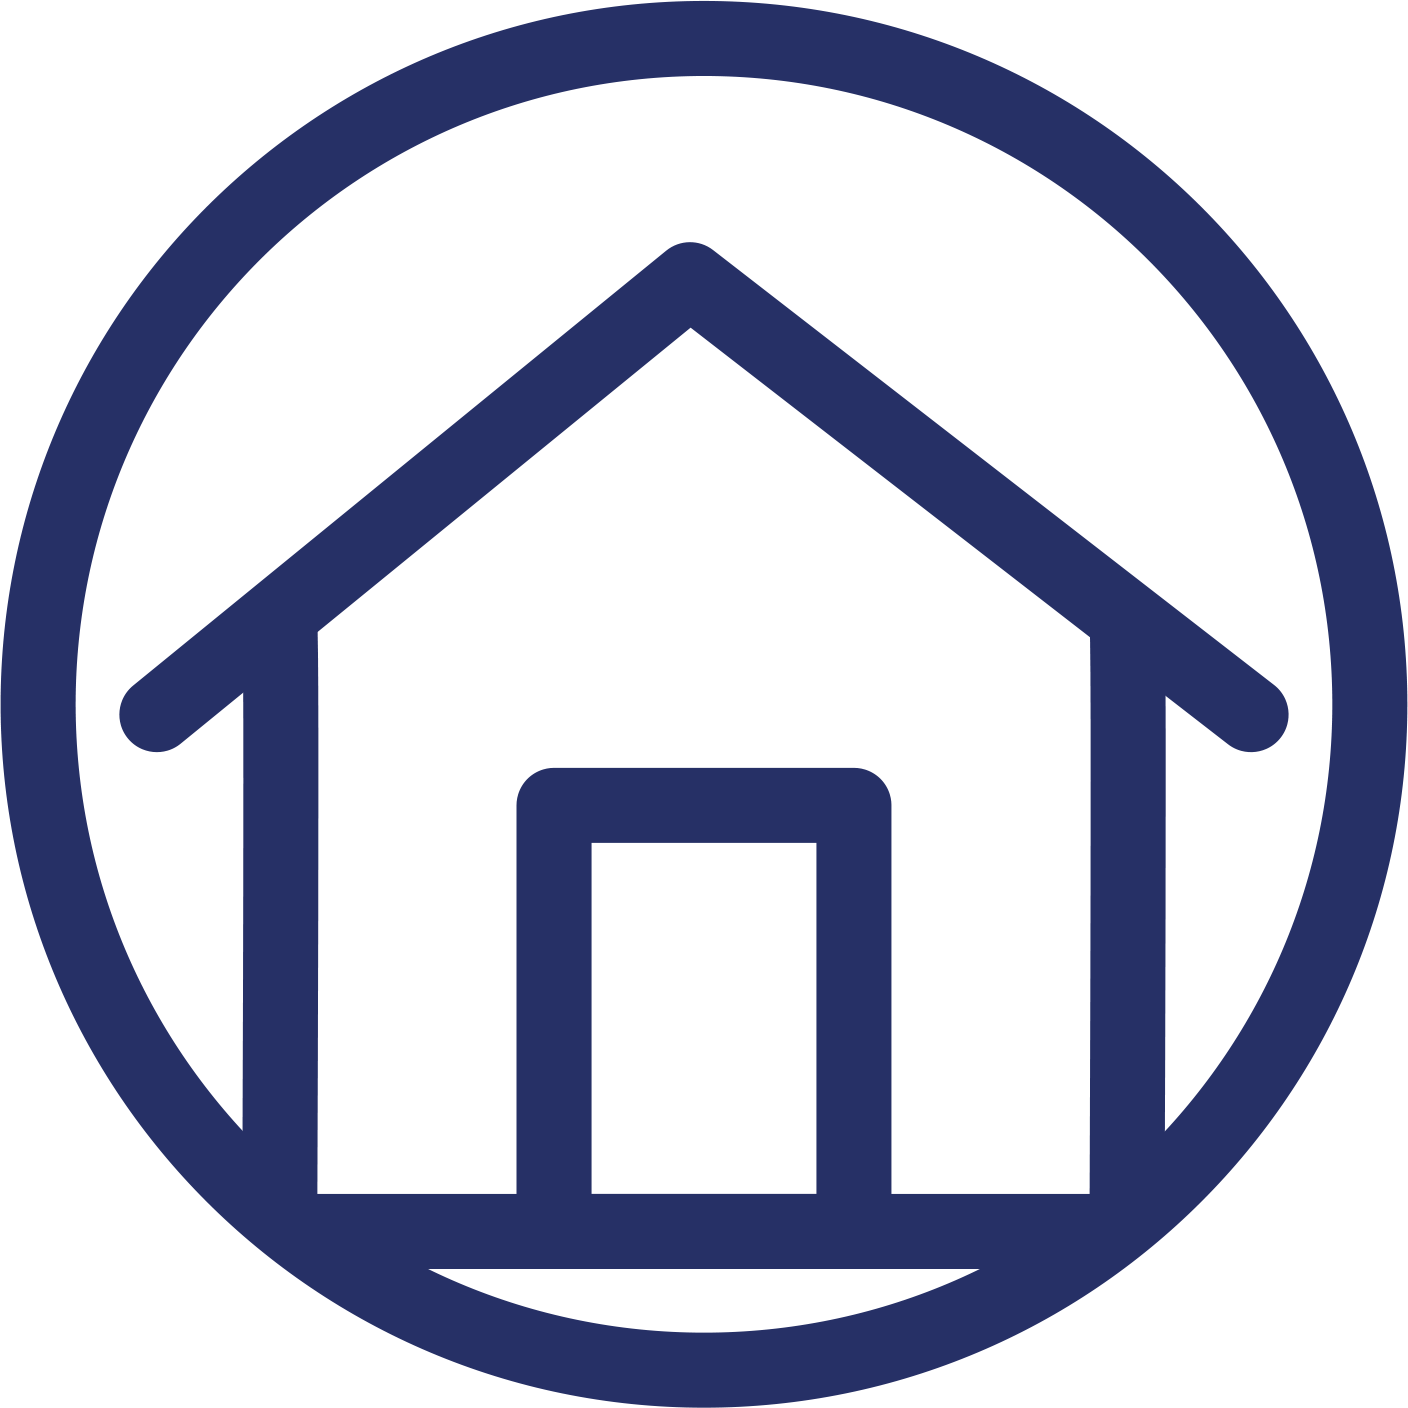 Homestay available Icon